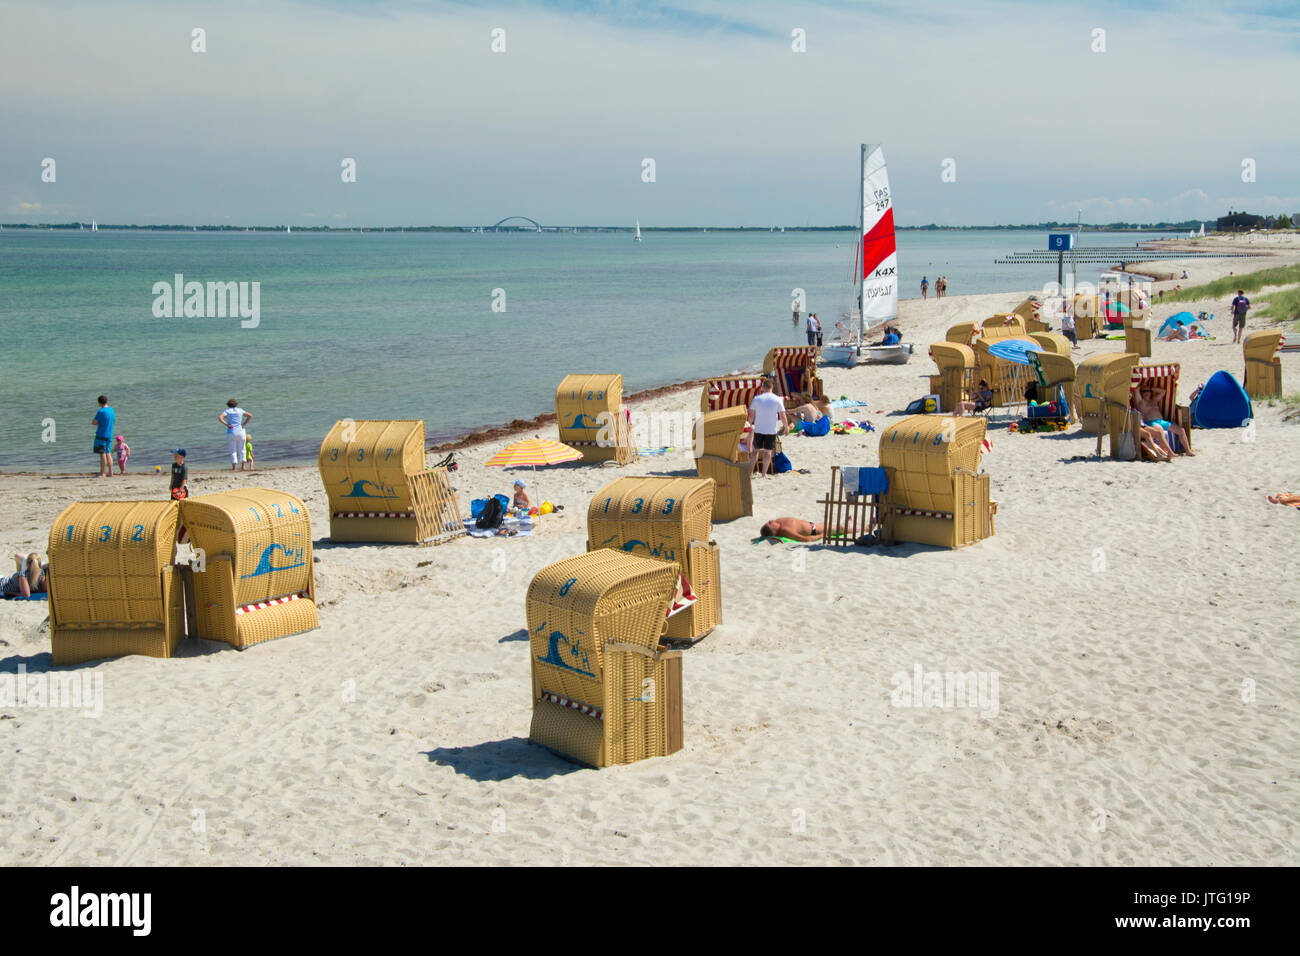 Strandkorbe or beach shelters at Steinwarder Beach at Heiligenhafen on the Ostsee or Baltic coast, Holstein, Germany - Stock Image